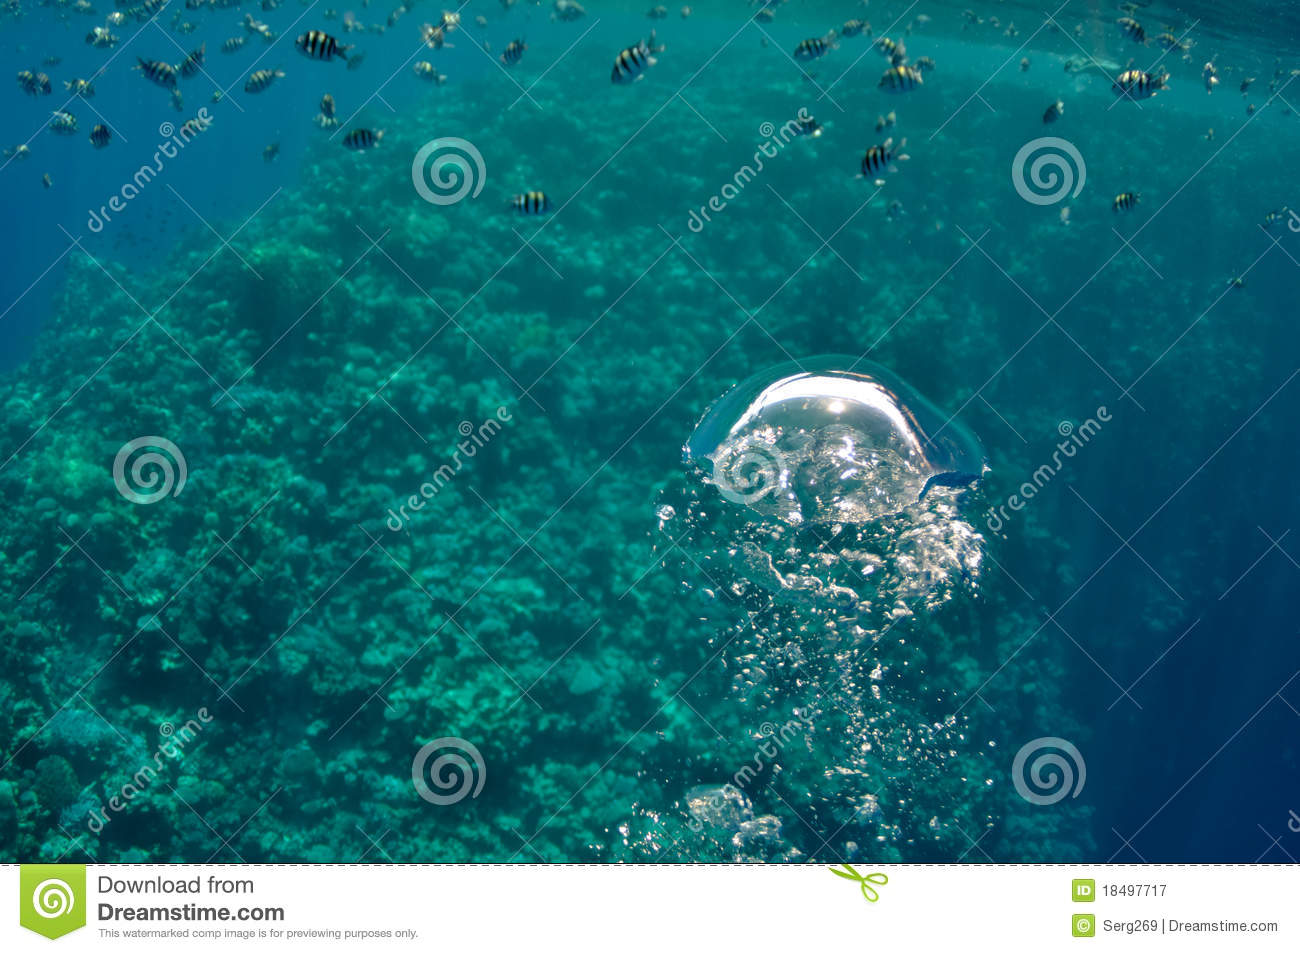 Cartoon Underwater Bubbles | www.imgkid.com - The Image ...